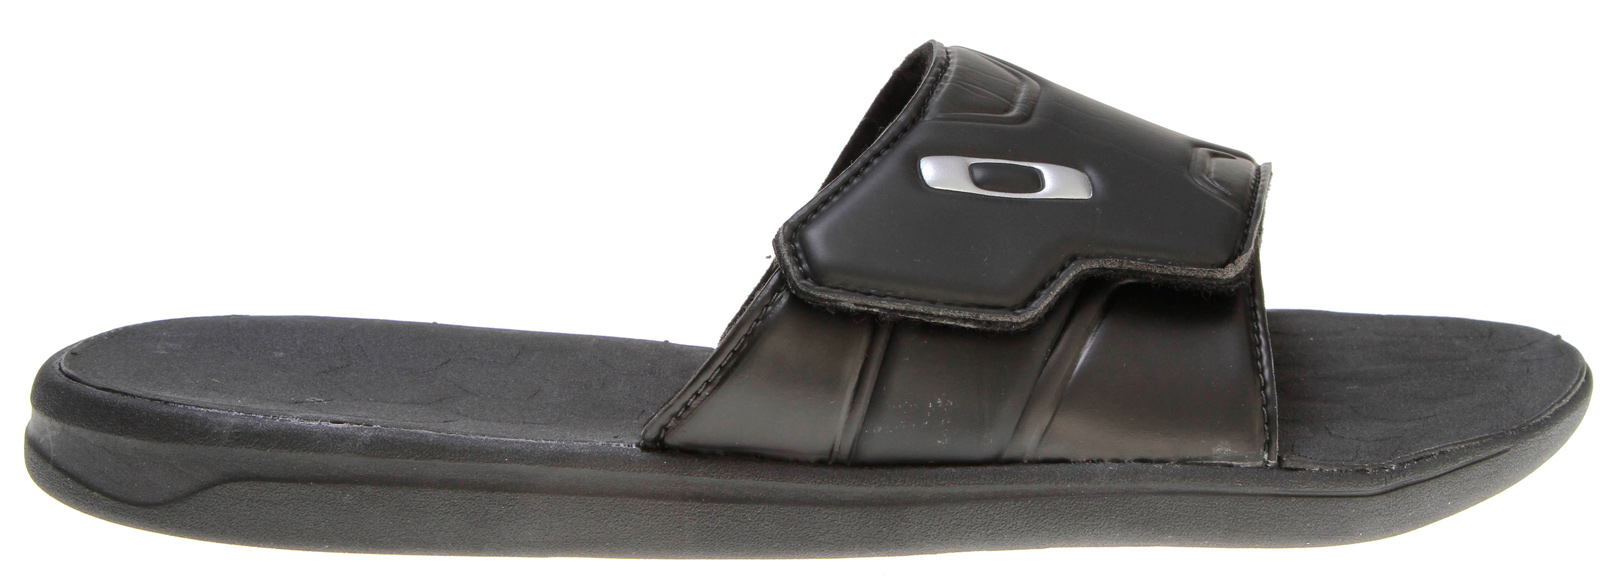 Surf Key Features of the Oakley Operative Slide Sandals: Upper: Soft-touch compression molded polymer strap with Velcro closure Lining: Moisture wicking textile liner with Microban® antimicrobial treatment Footbed/Midsole: Compression molded EVA chassis Outsole: High traction, high abrasion Unobtanium® EVA insert outsole - $36.00